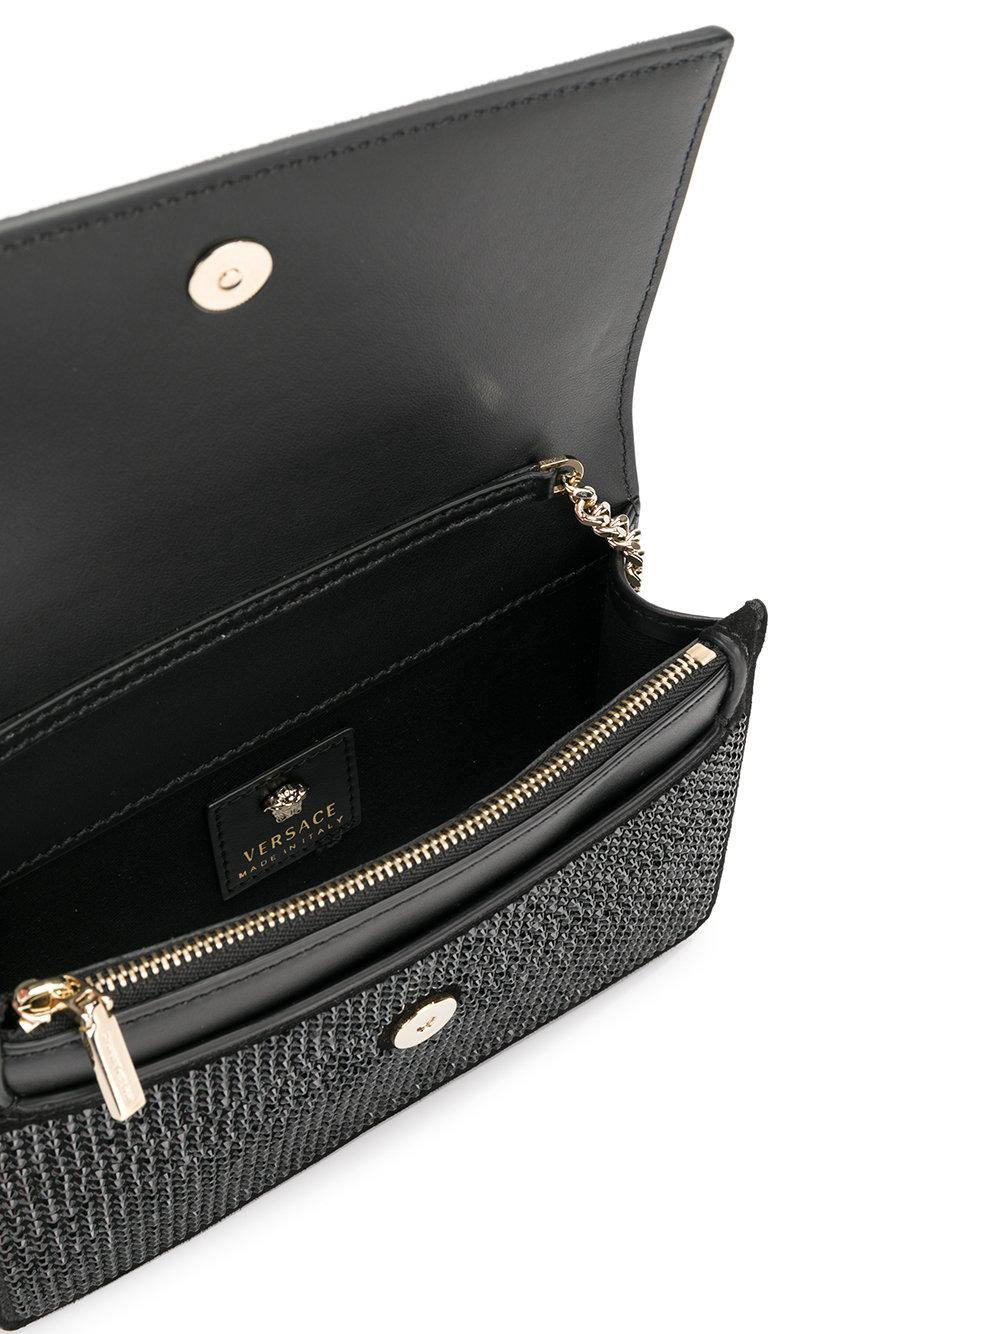 22174a0c2f Lyst - Versace Crystal-embellished Medusa Palazzo Shoulder Bag in Black